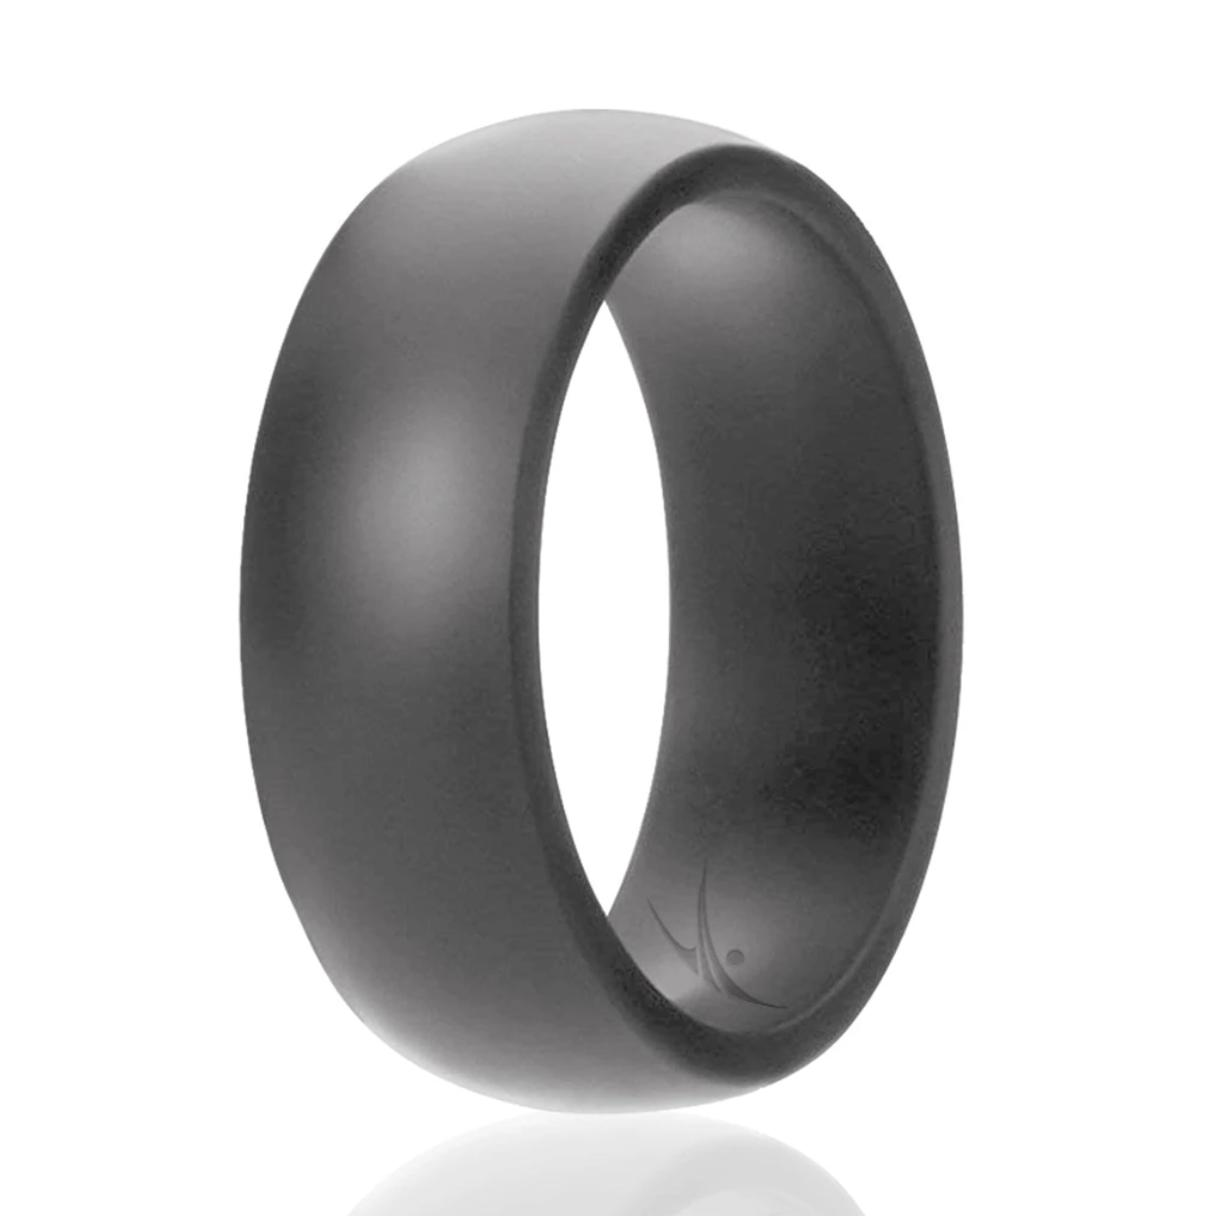 ROQ Silicone Size 9 Silicone Ring